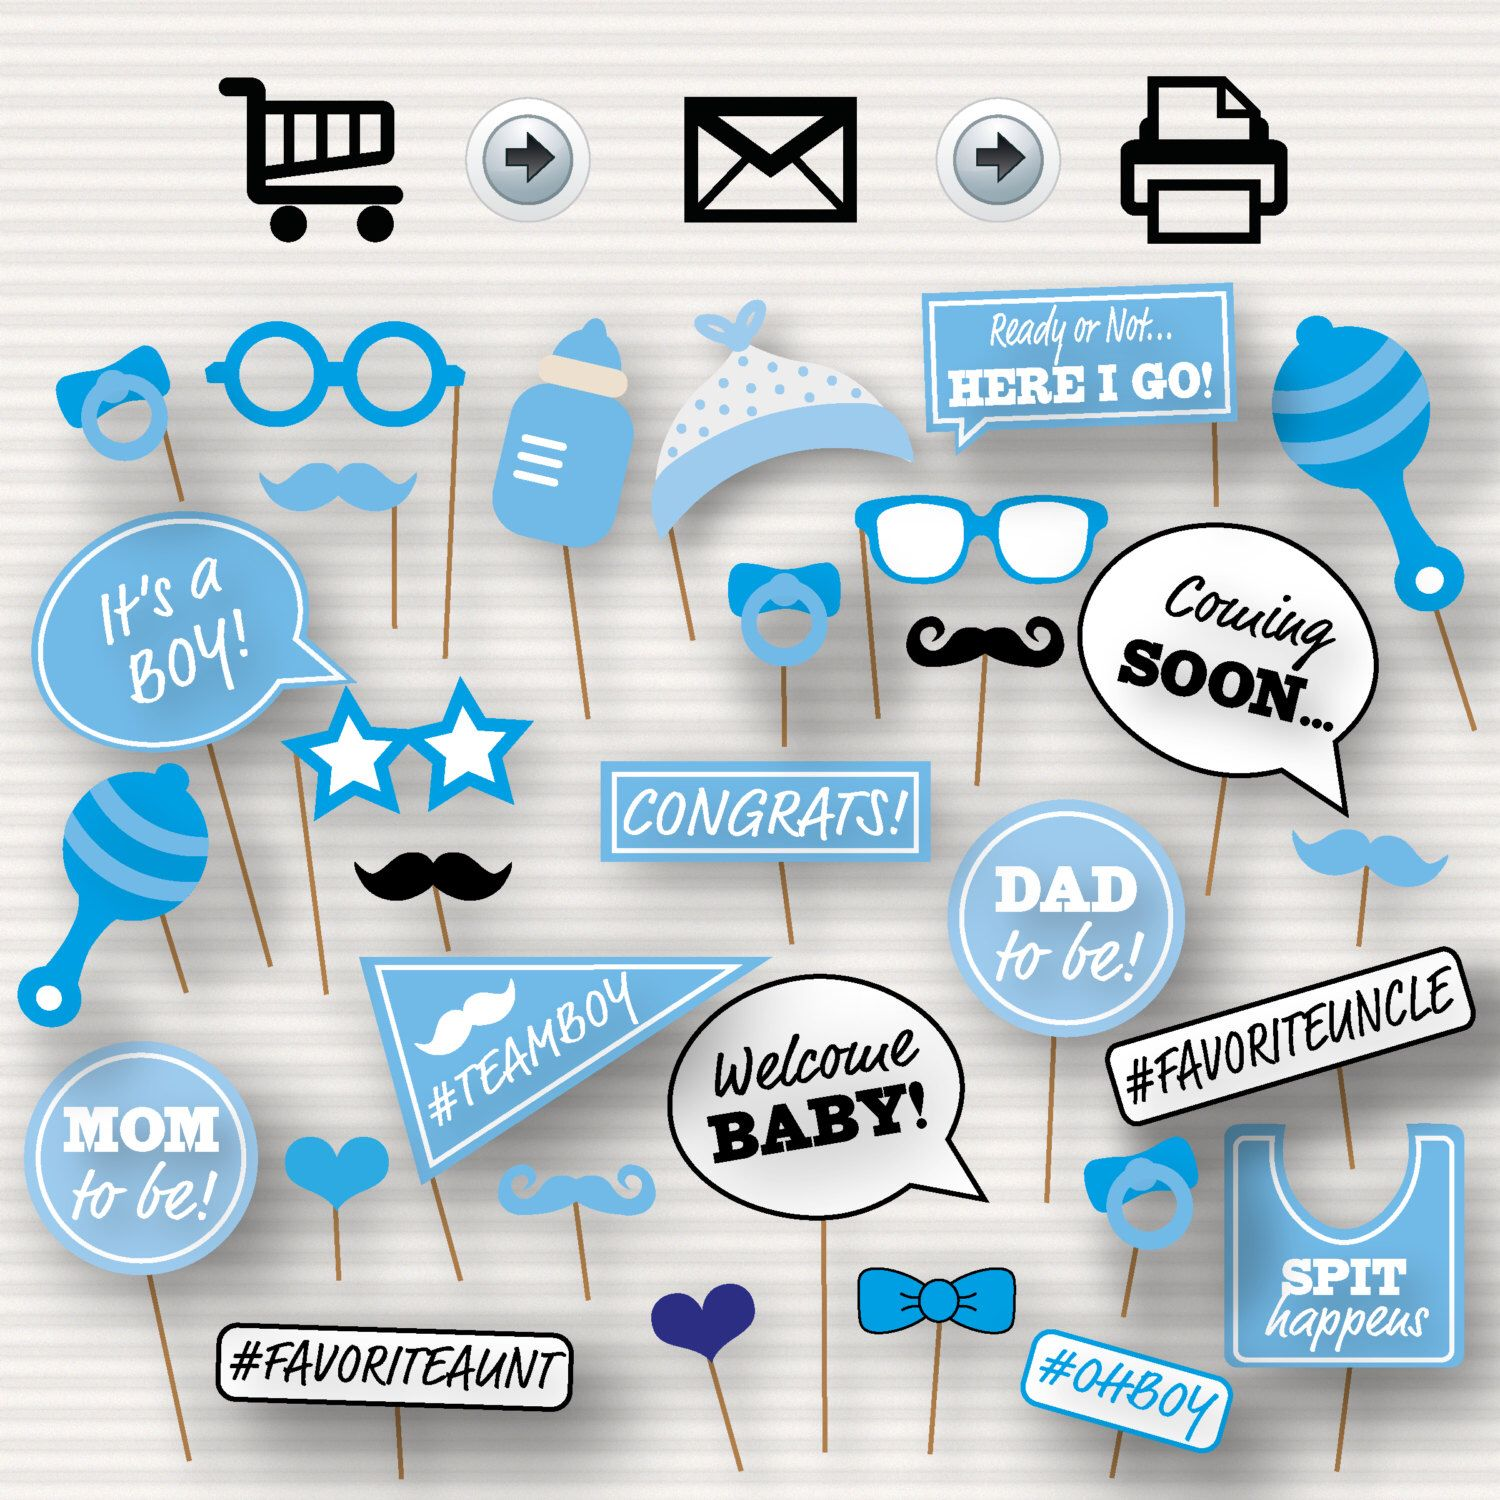 Baby Shower Printable Photo Booth Props Baby Shower Etsy Baby Shower Photo Booth Props Baby Shower Souvenirs Boy Baby Shower Souvenirs